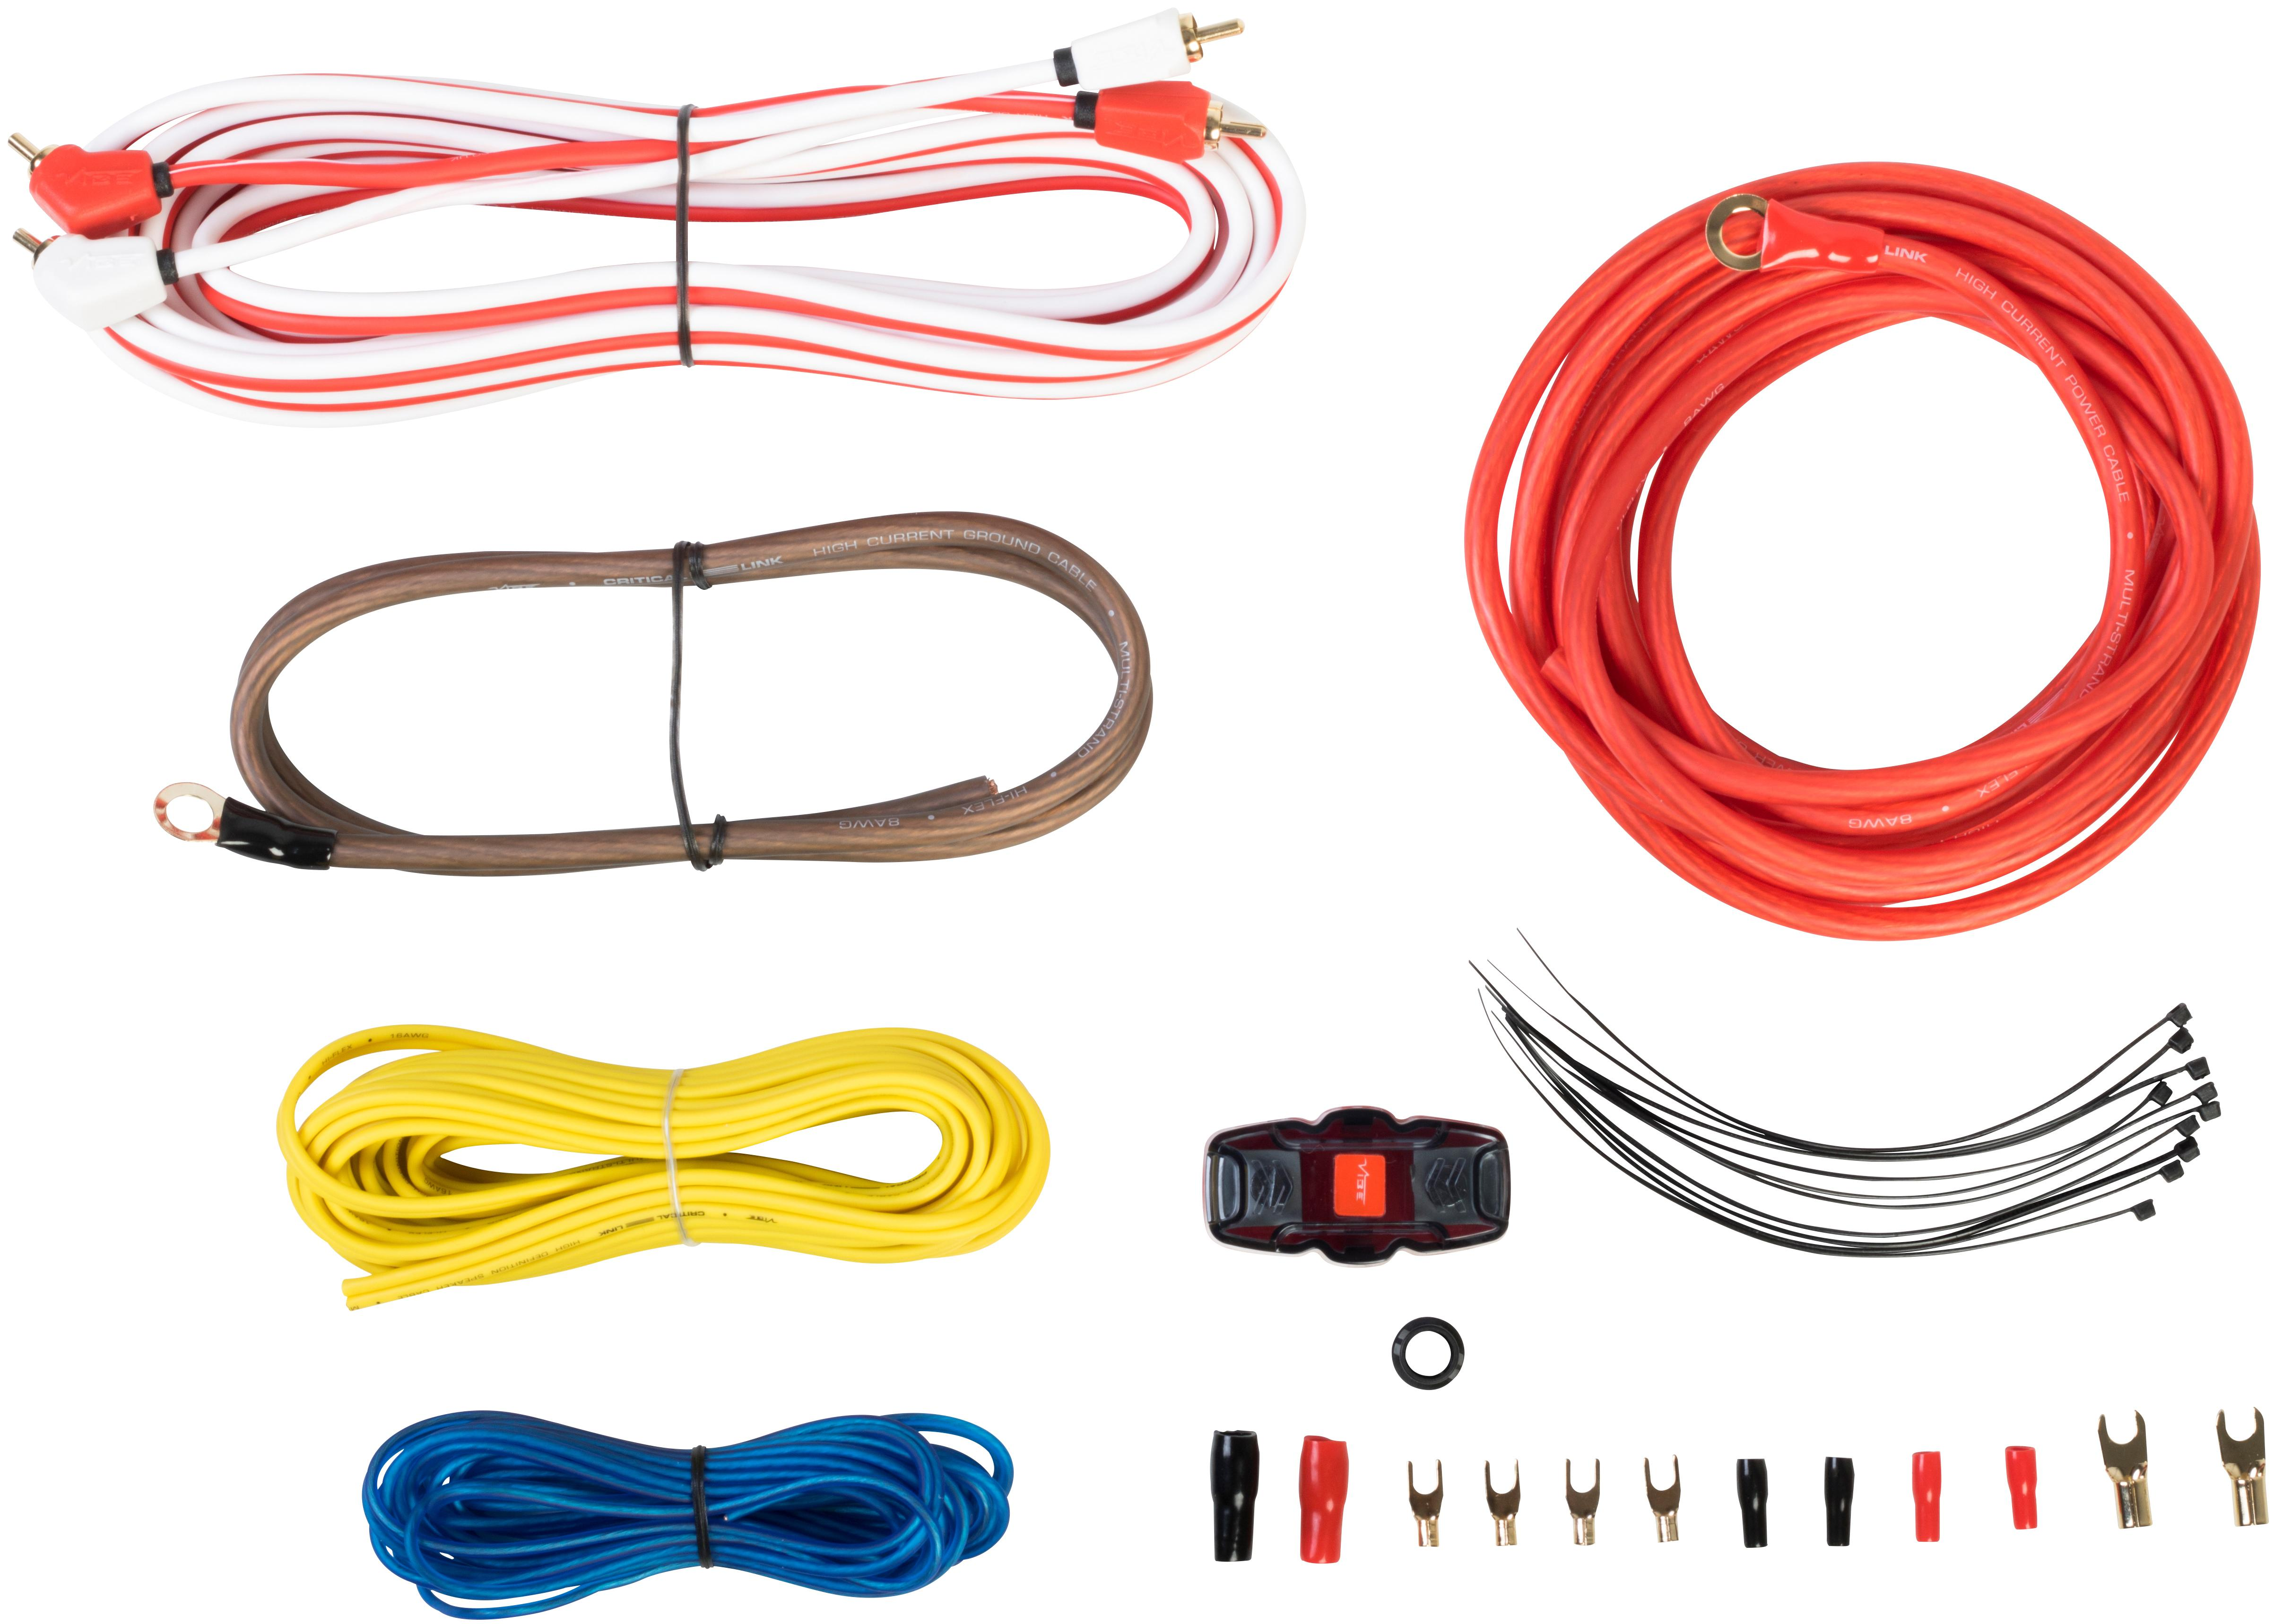 ford mondeo mk3 radio wiring diagram furnas motor starters diagrams stereo fitting accessories car we fit image of vibe 8 awg advanced amp kit